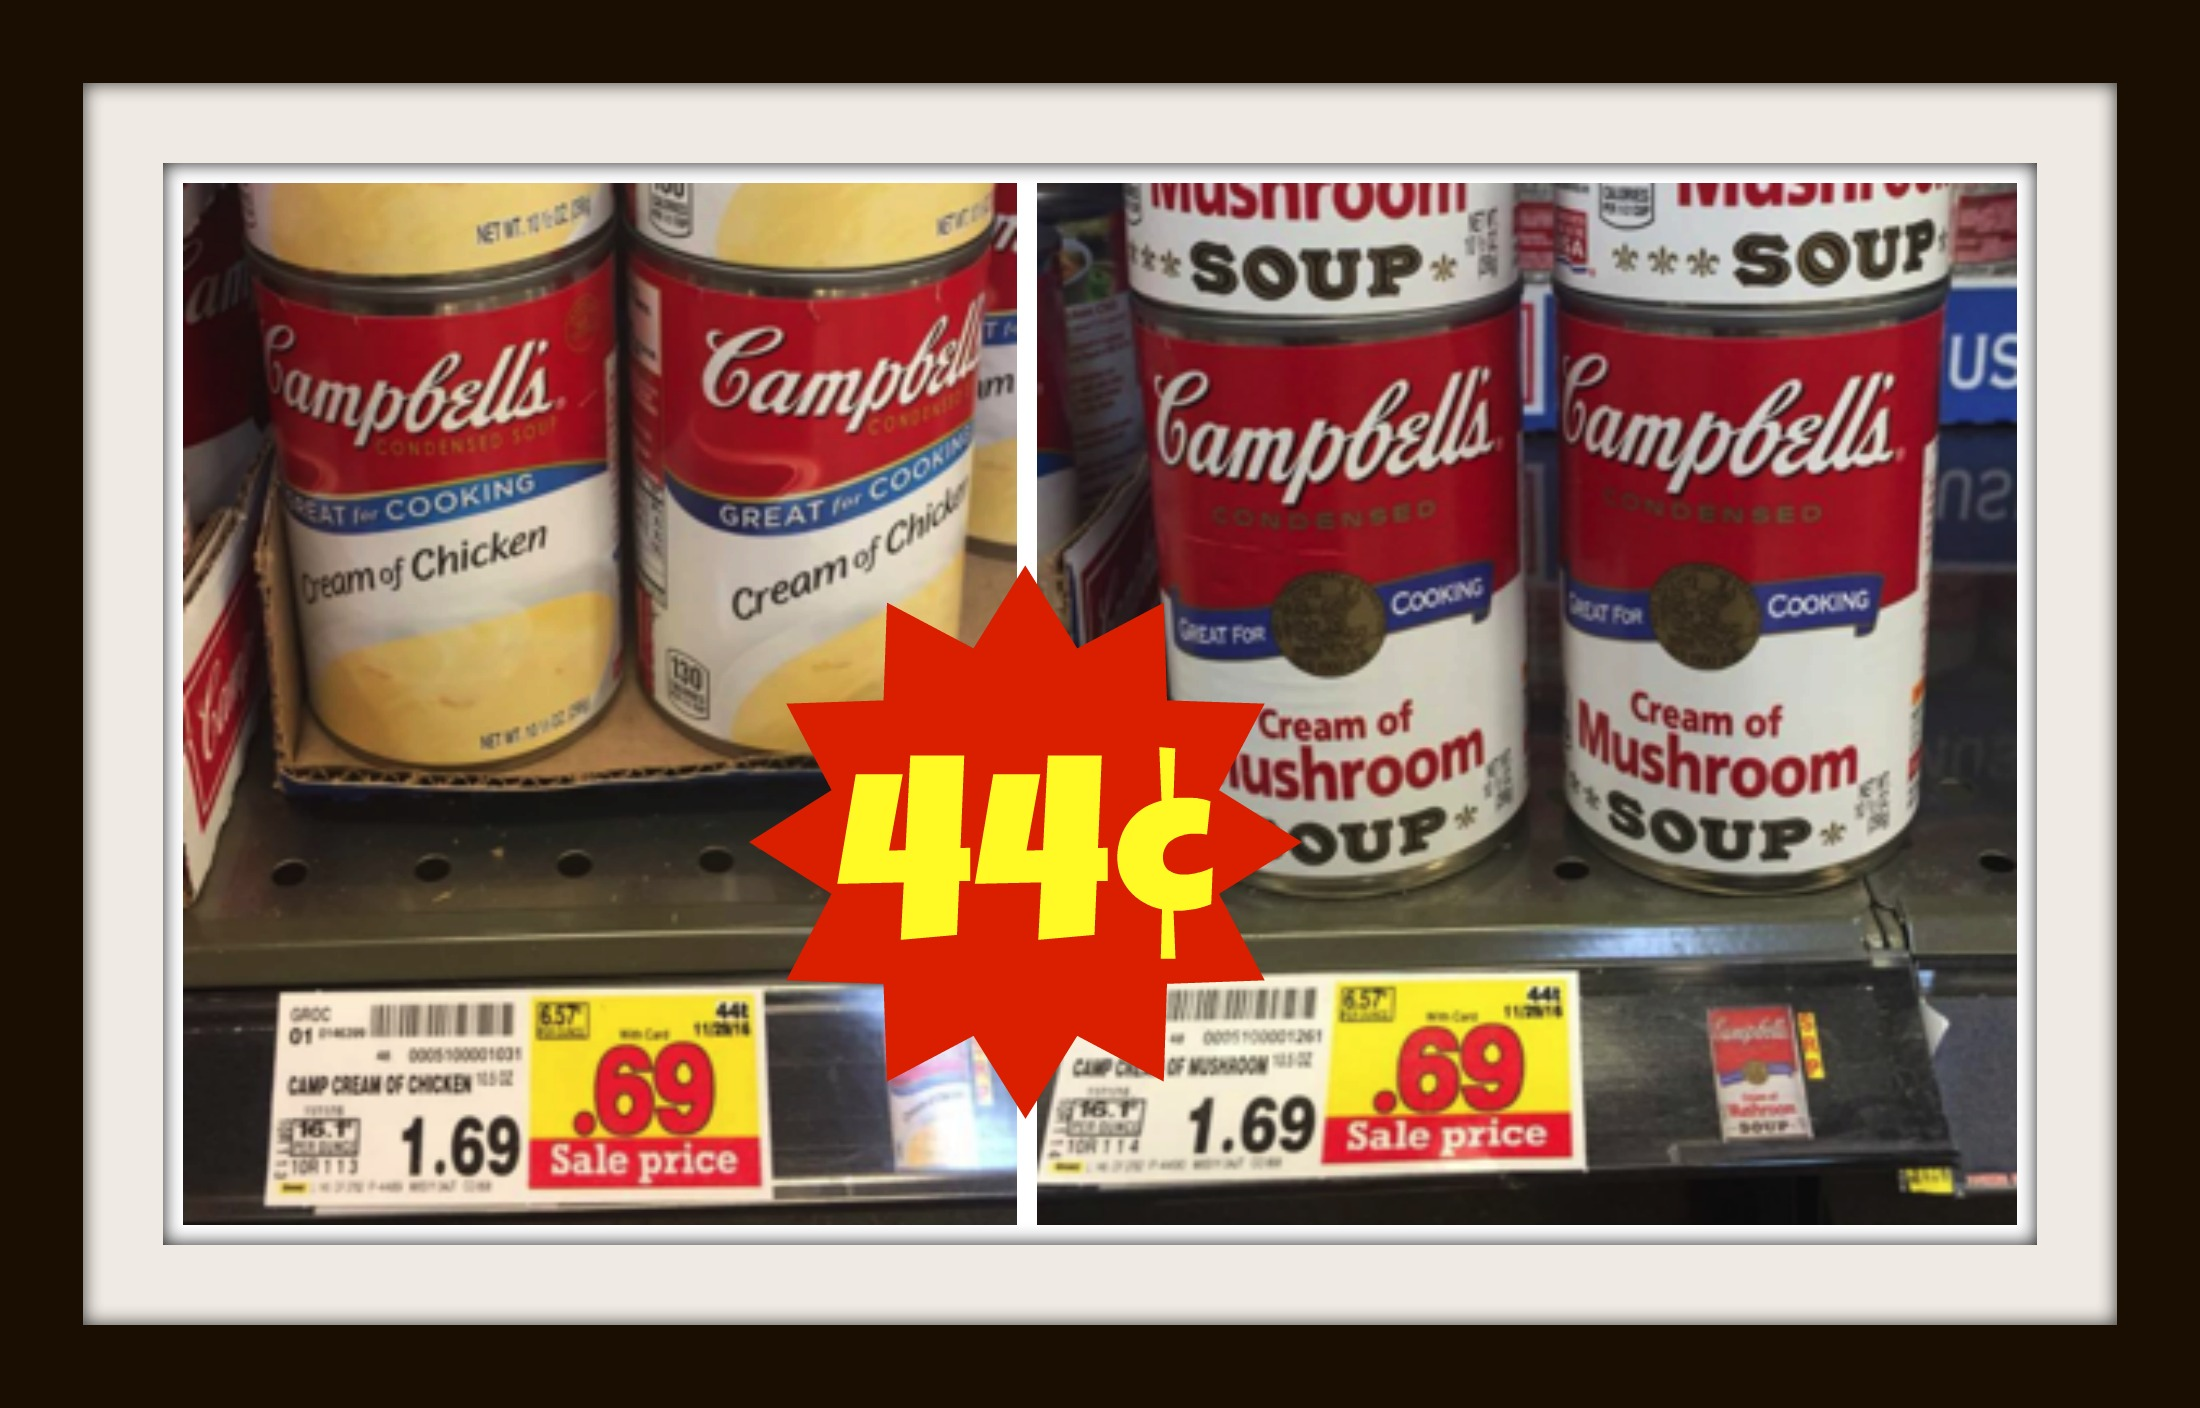 photograph relating to Campbell Soup Printable Coupon known as Clean Campbells Condensed Soup Charges at Kroger + Coupon